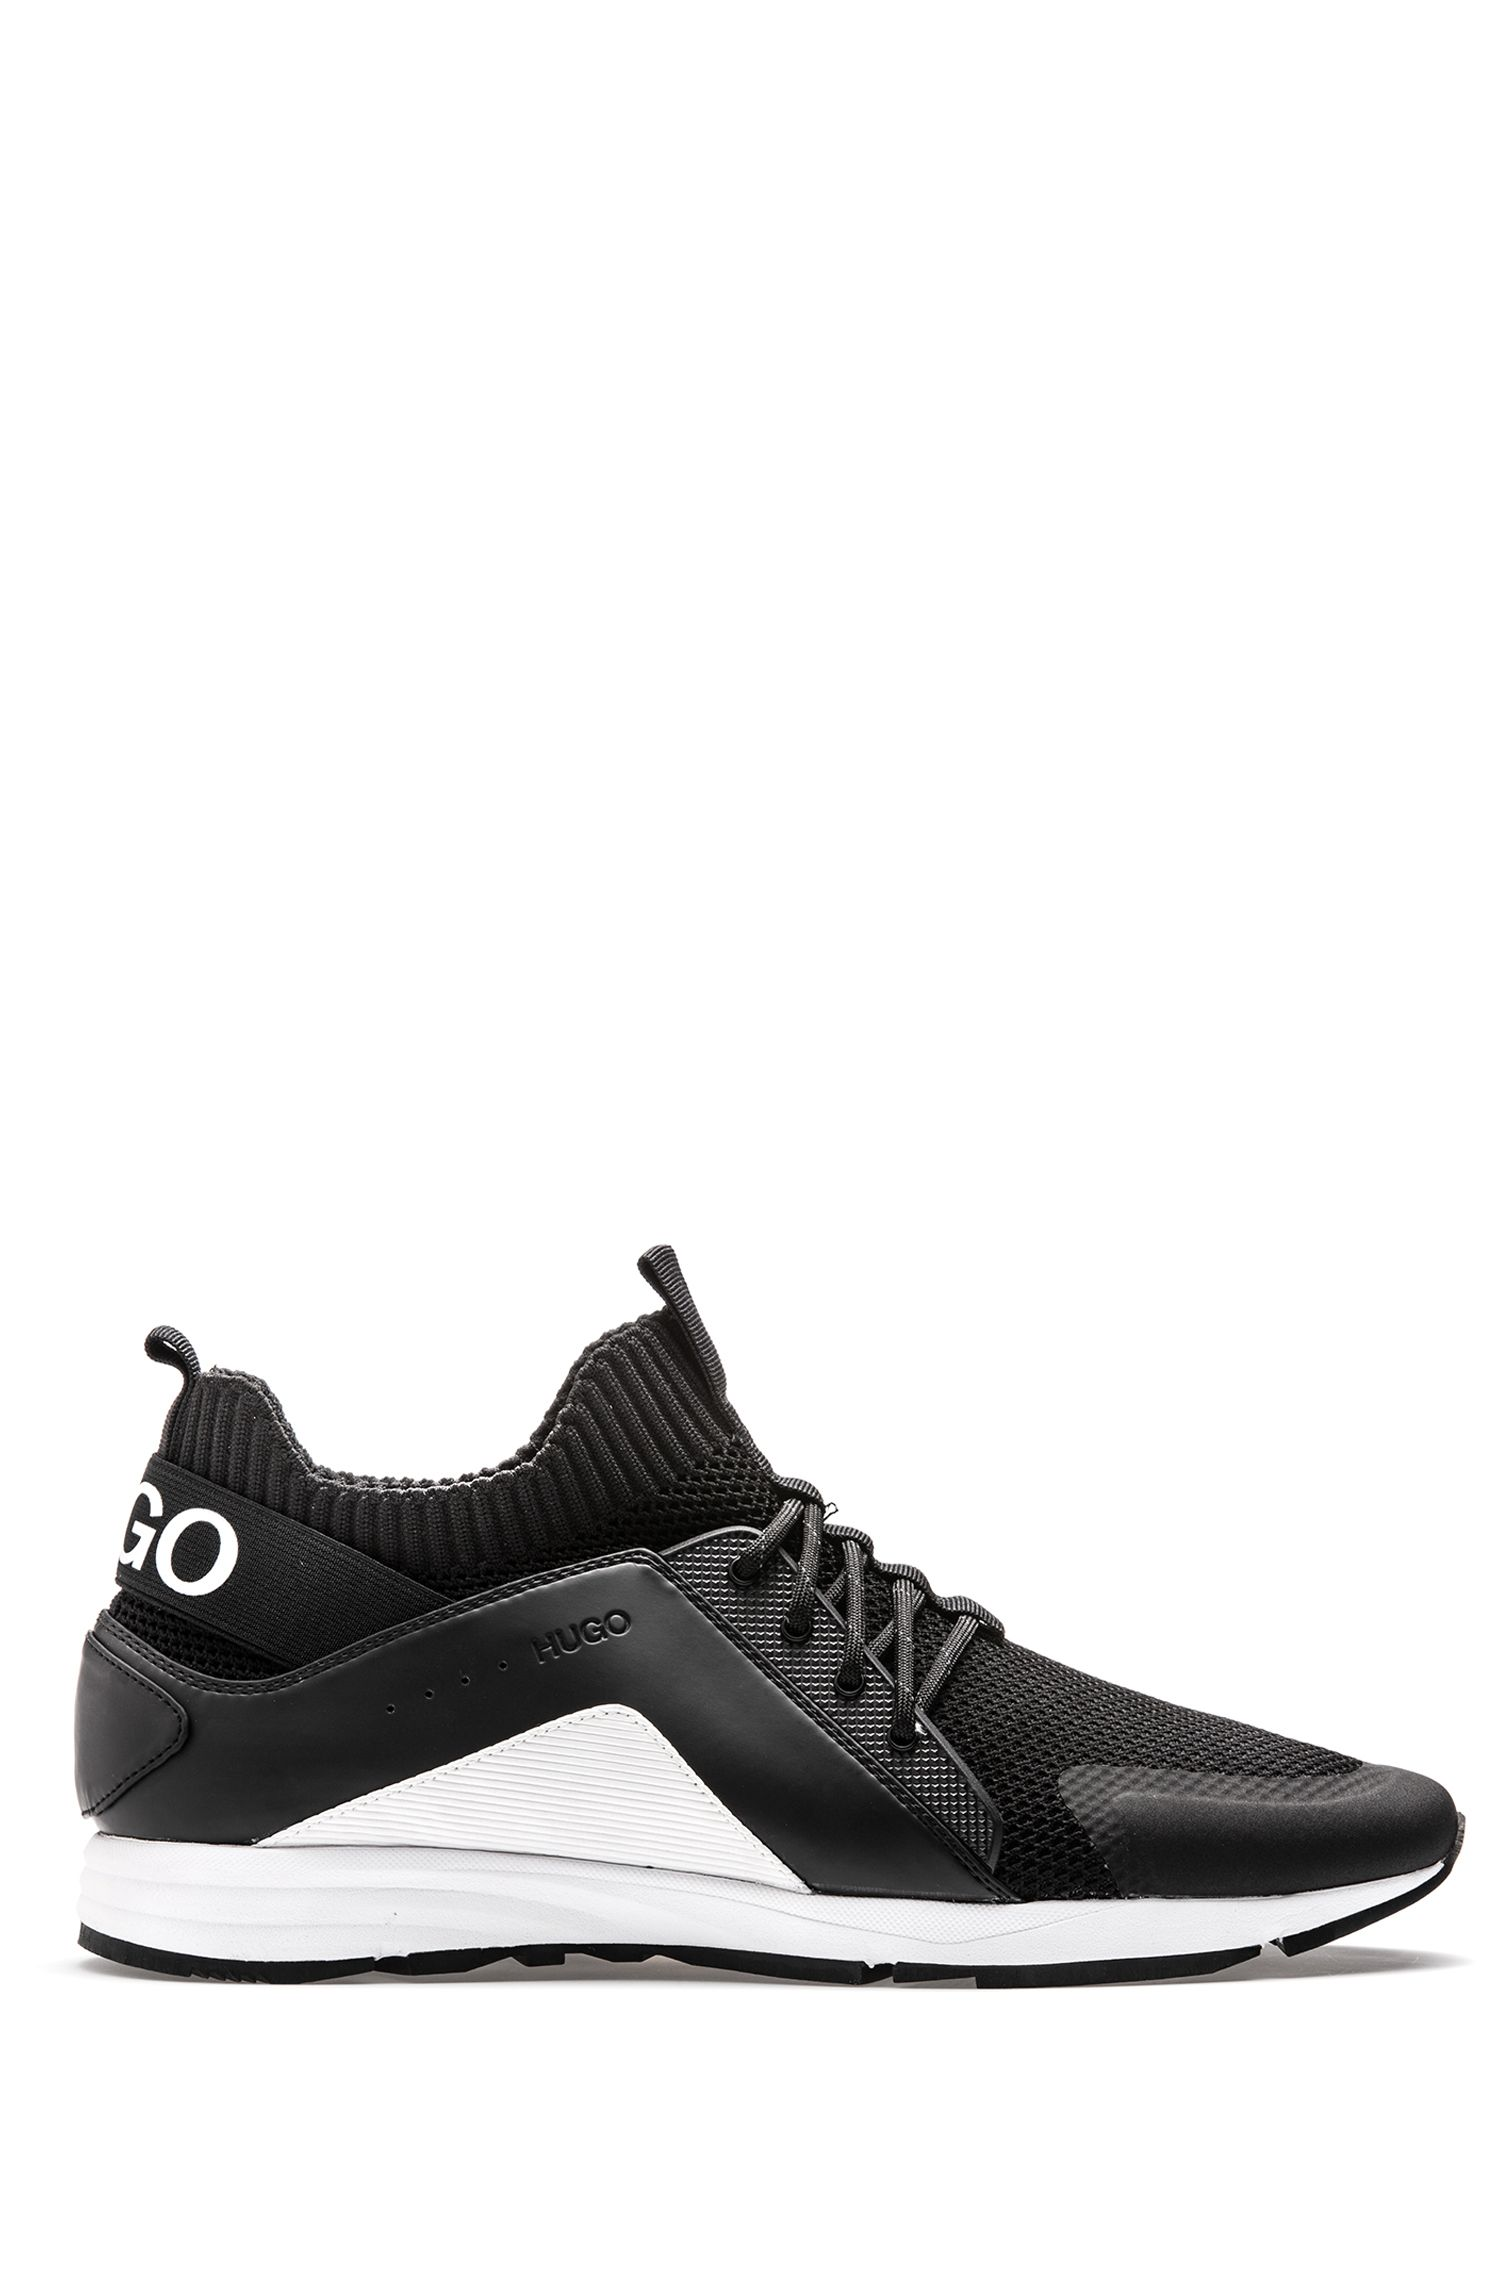 Running-inspired sneakers with Vibram sole and knitted sock, Black